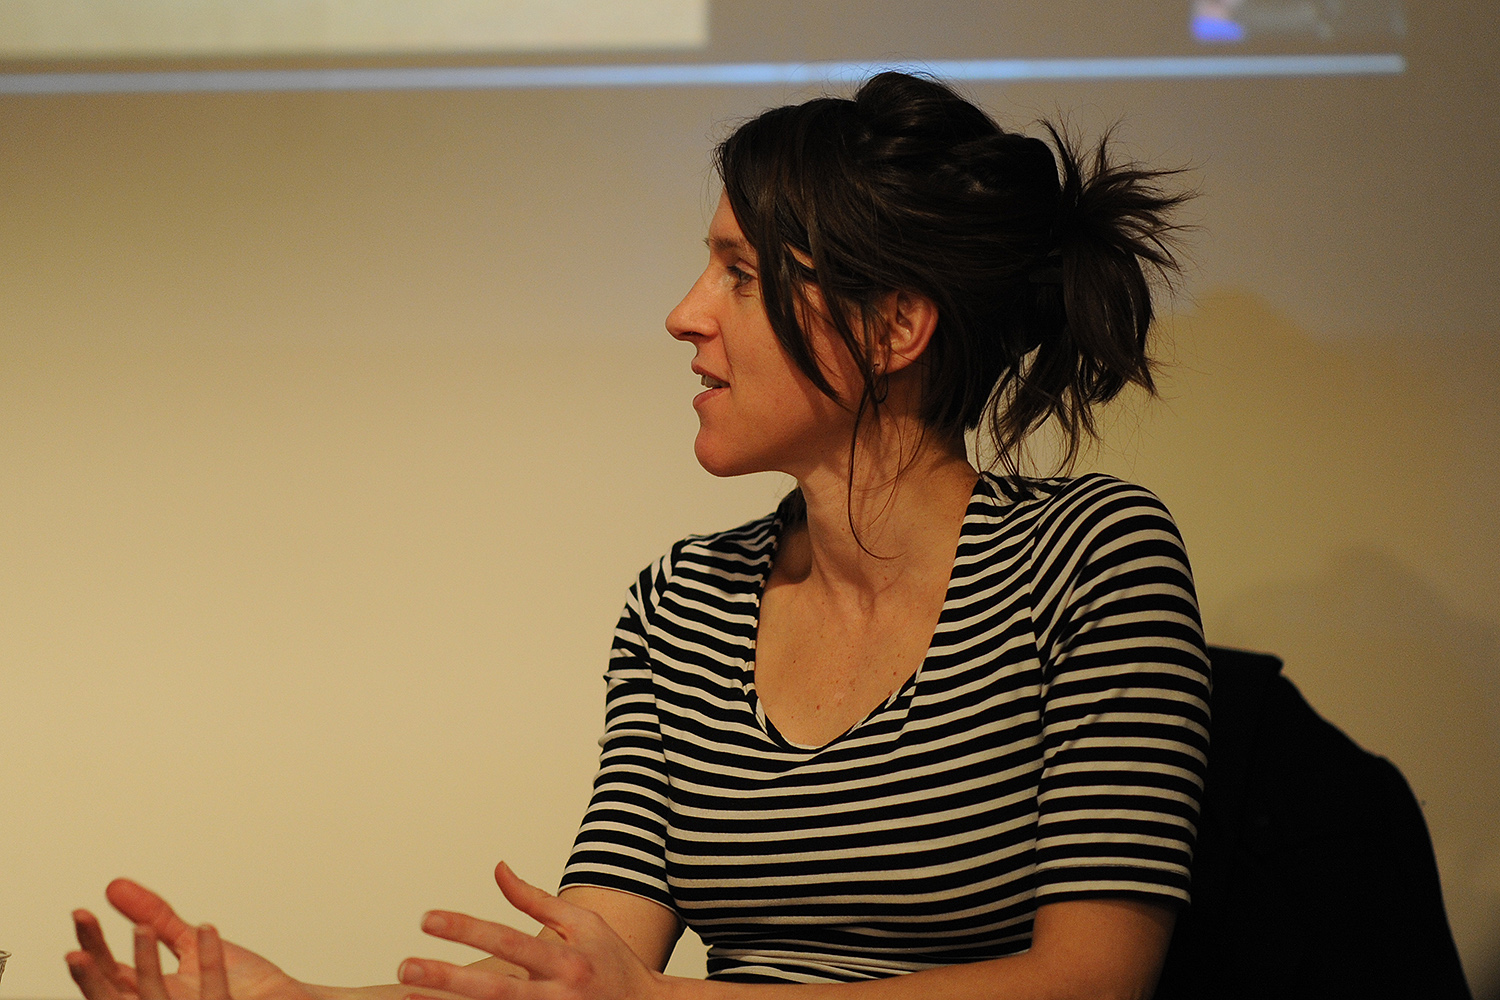 The event was moderated by Claire Grace, assistant professor of art.